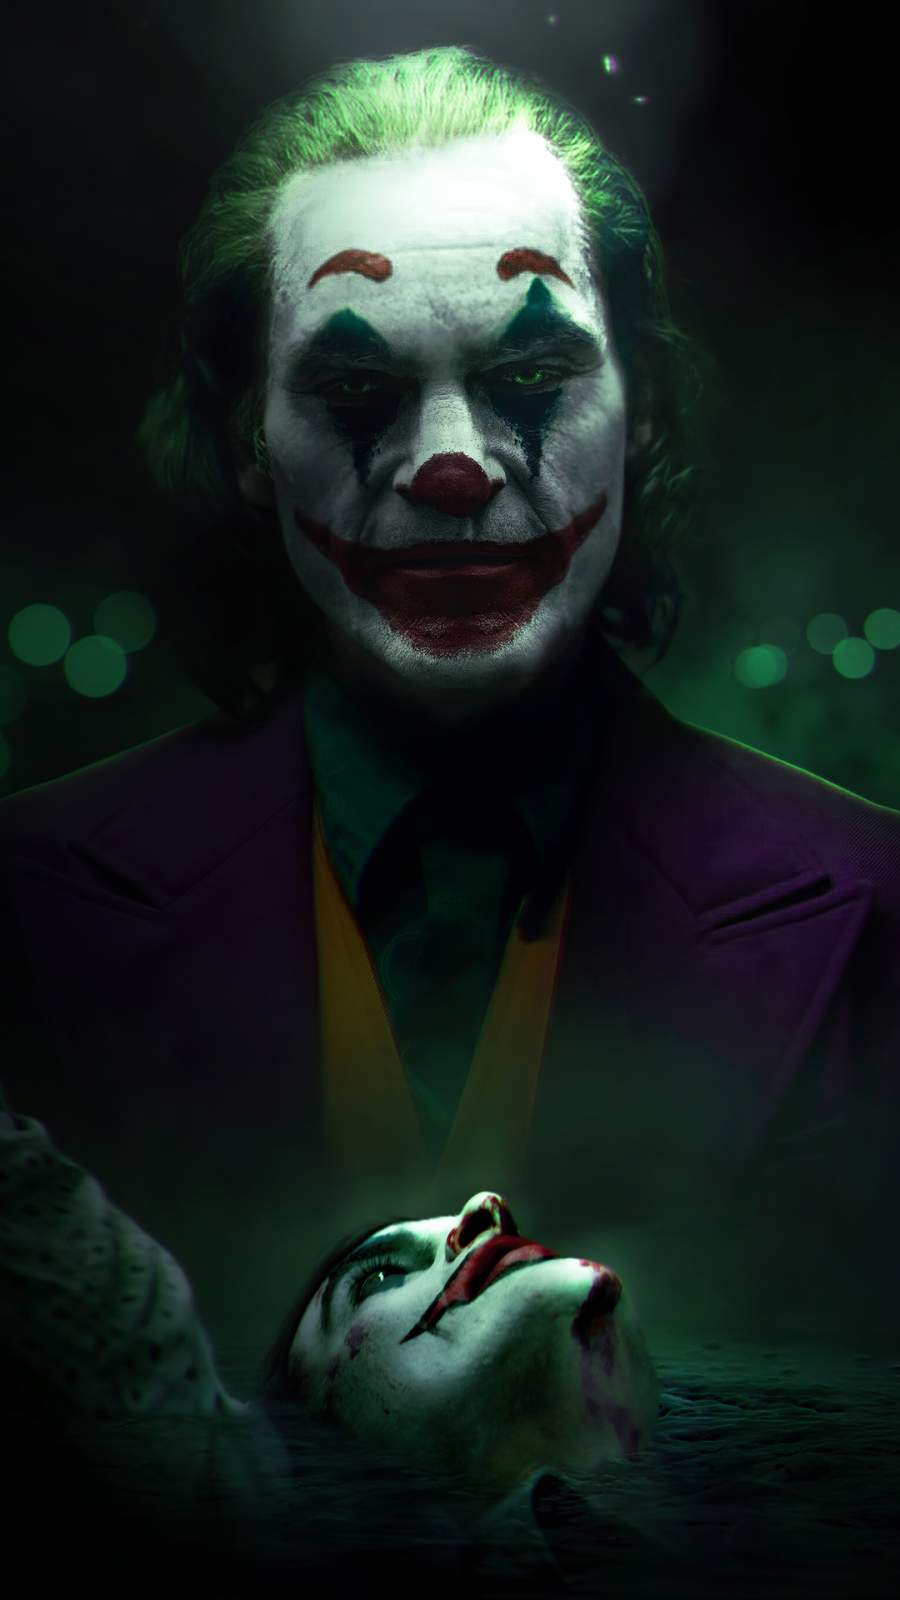 Joker 2020 iPhone Wallpaper